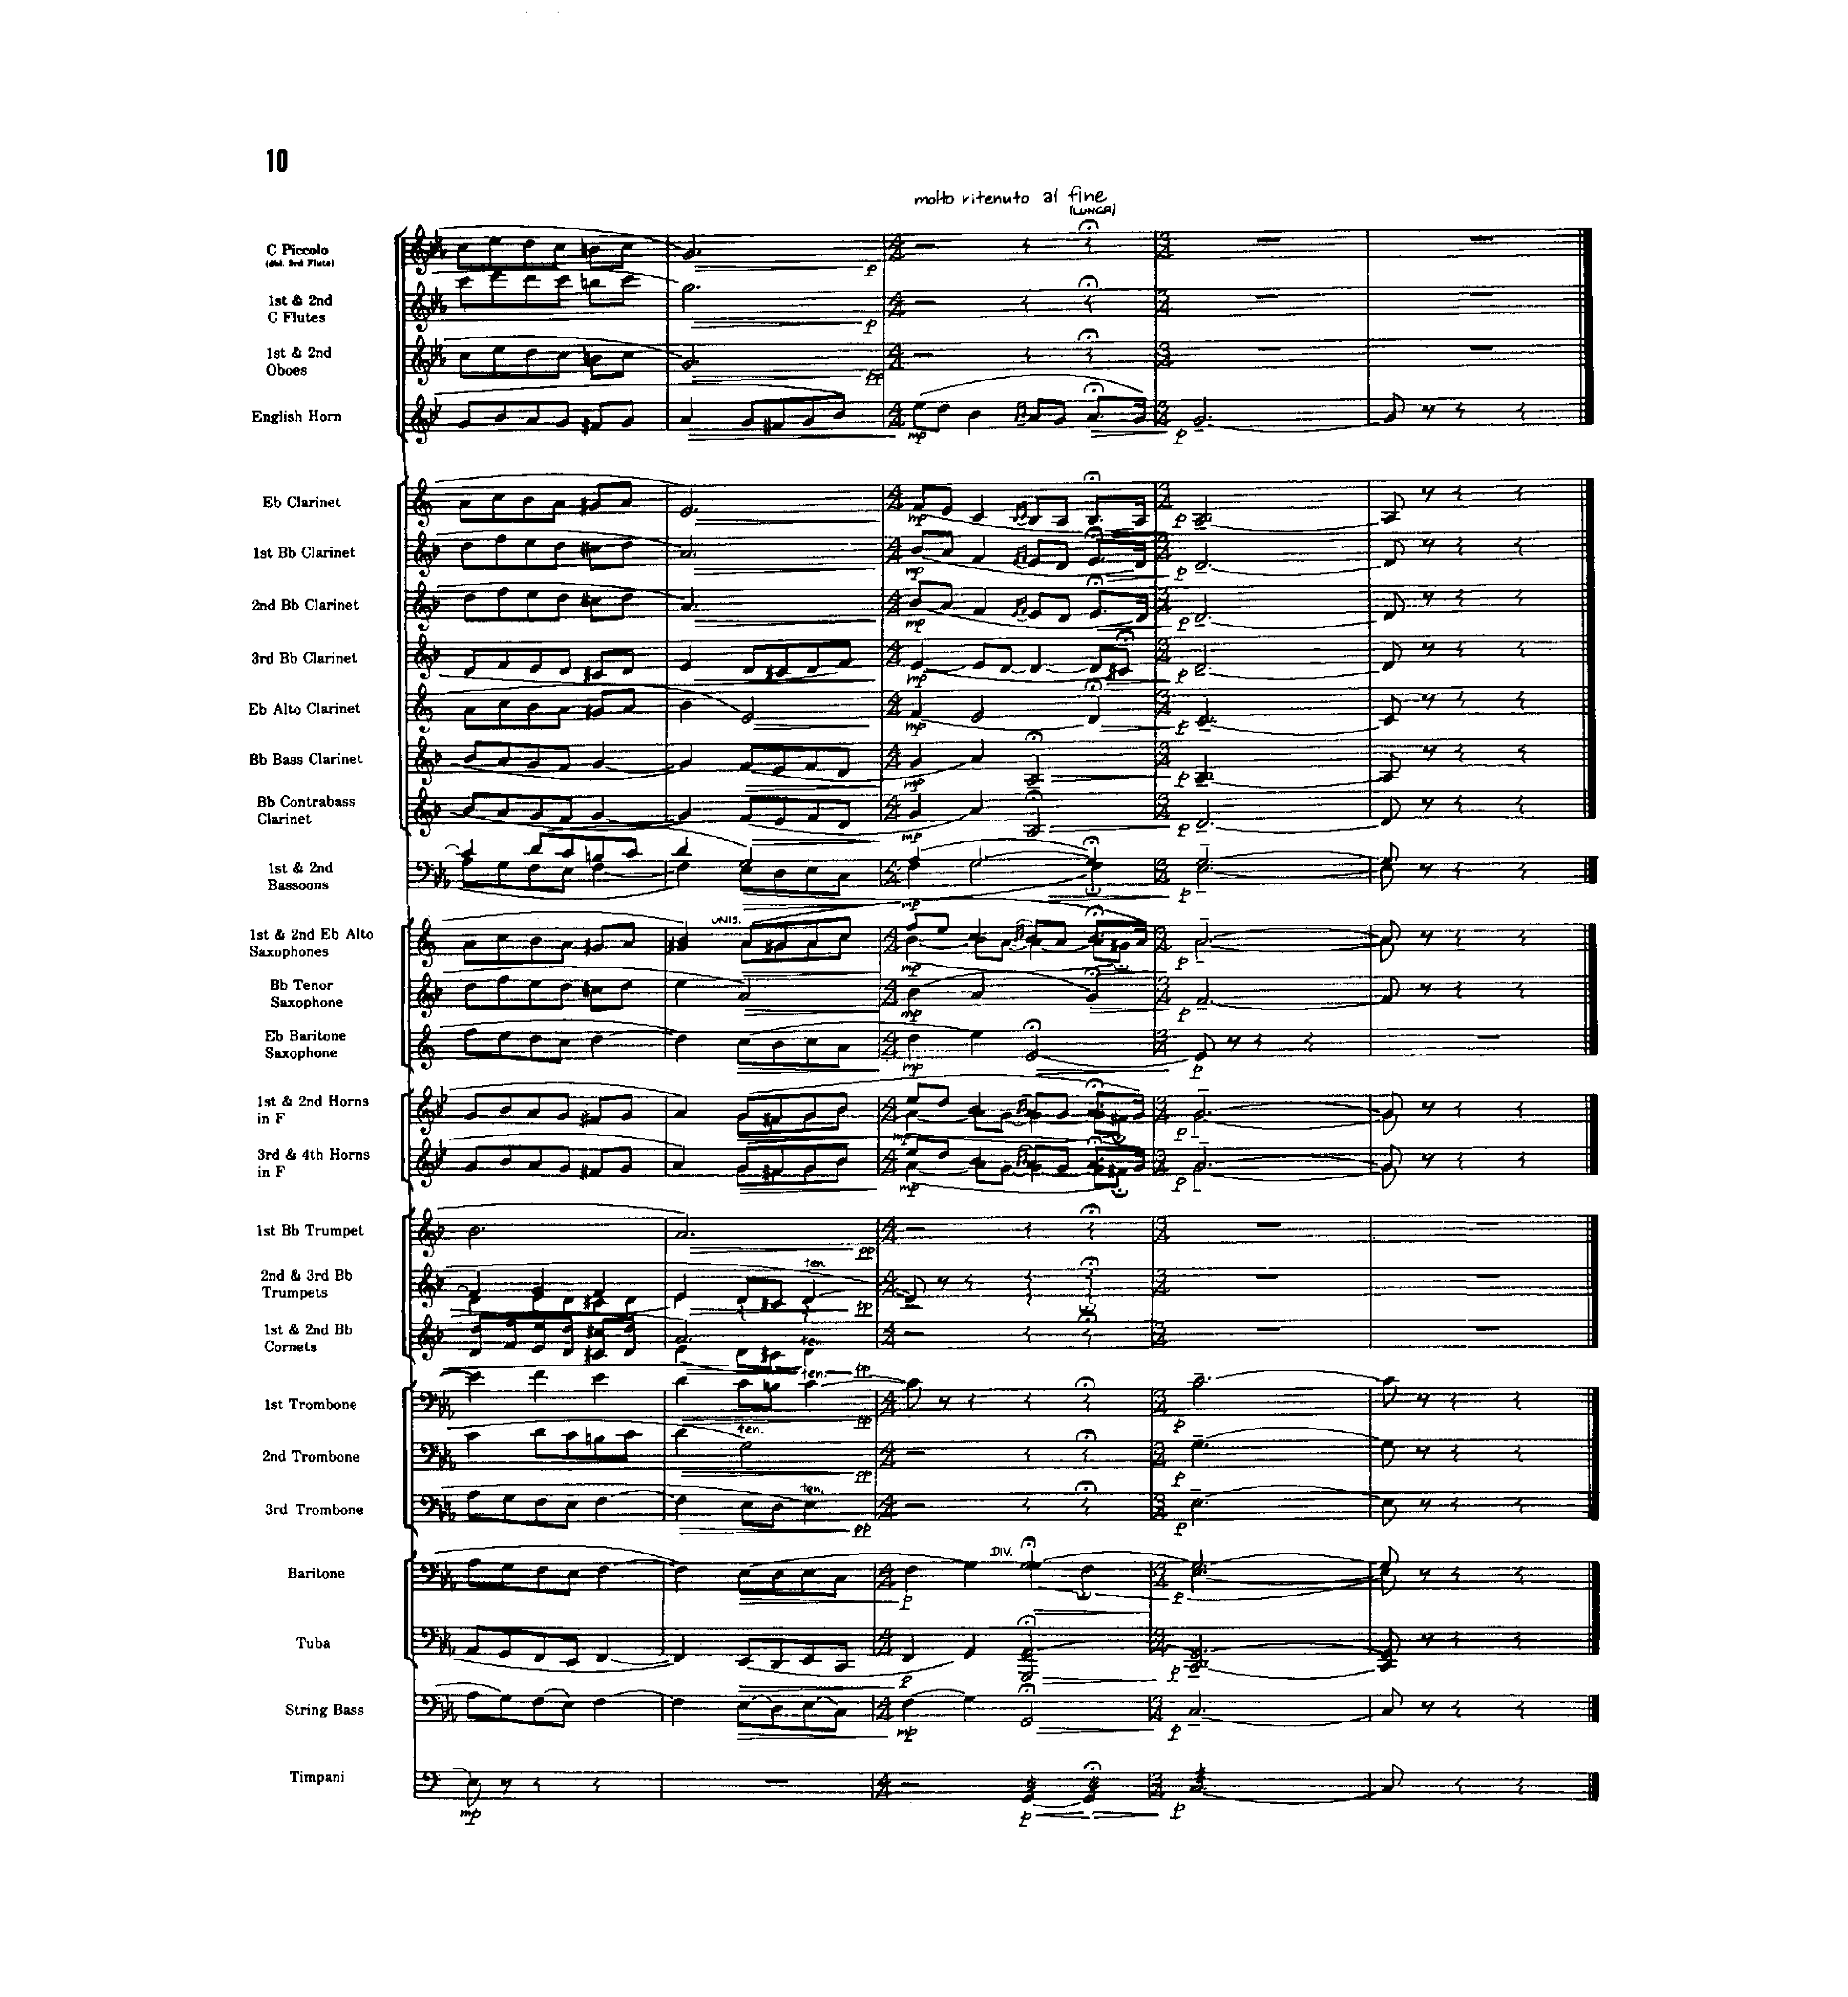 Come, Sweet Death By J. S. Bach/arr. Reed